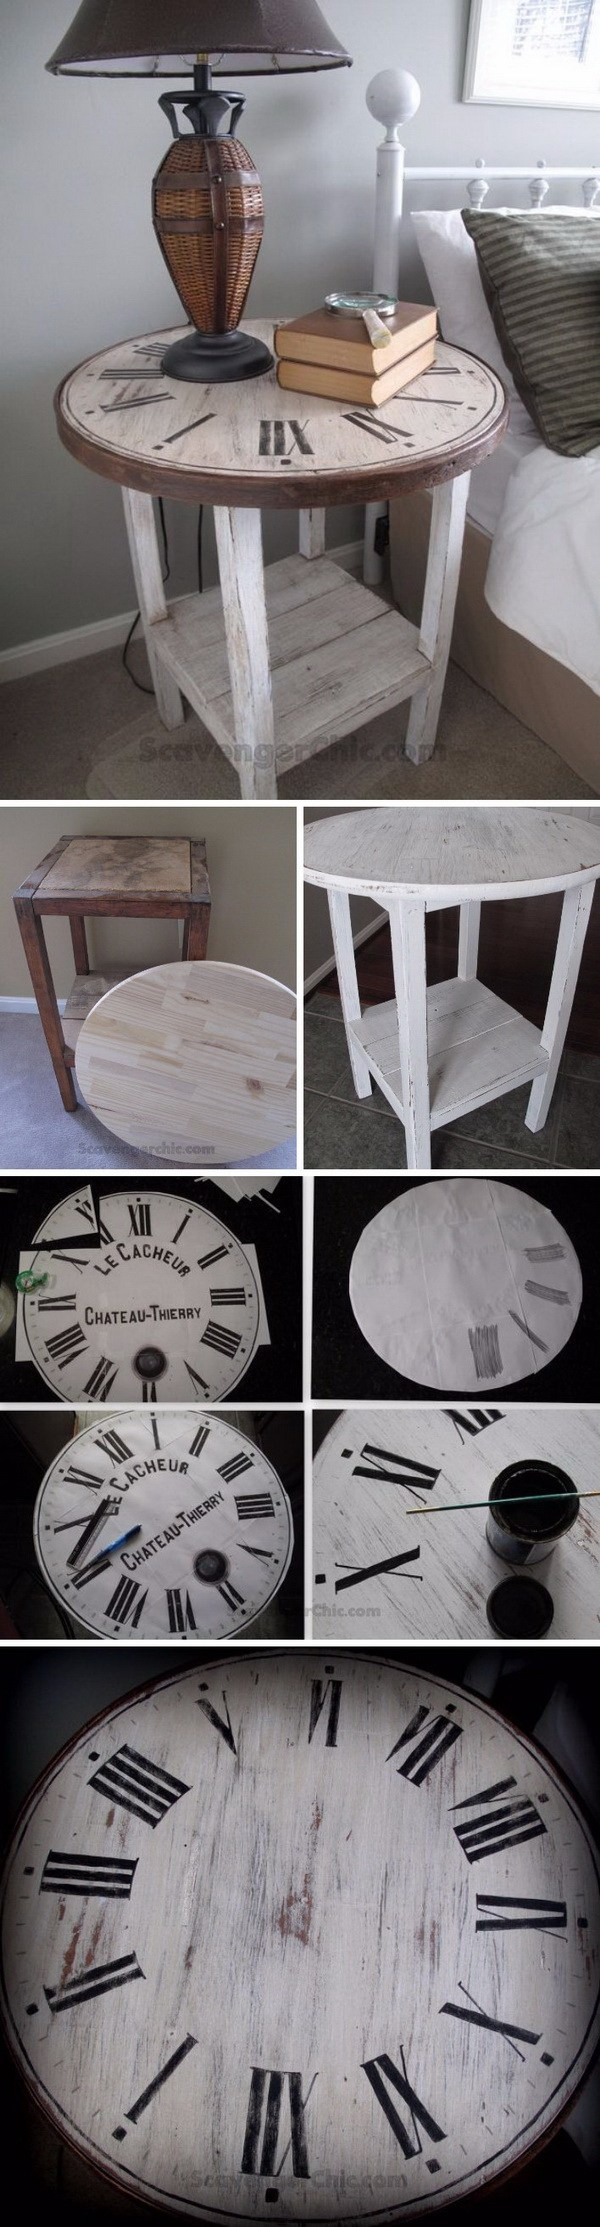 DIY Vintage Clock Table: Make this vintage clock table with some flea market finds! Easy and budget friendly to do and the result turns out so beautiful for your home.